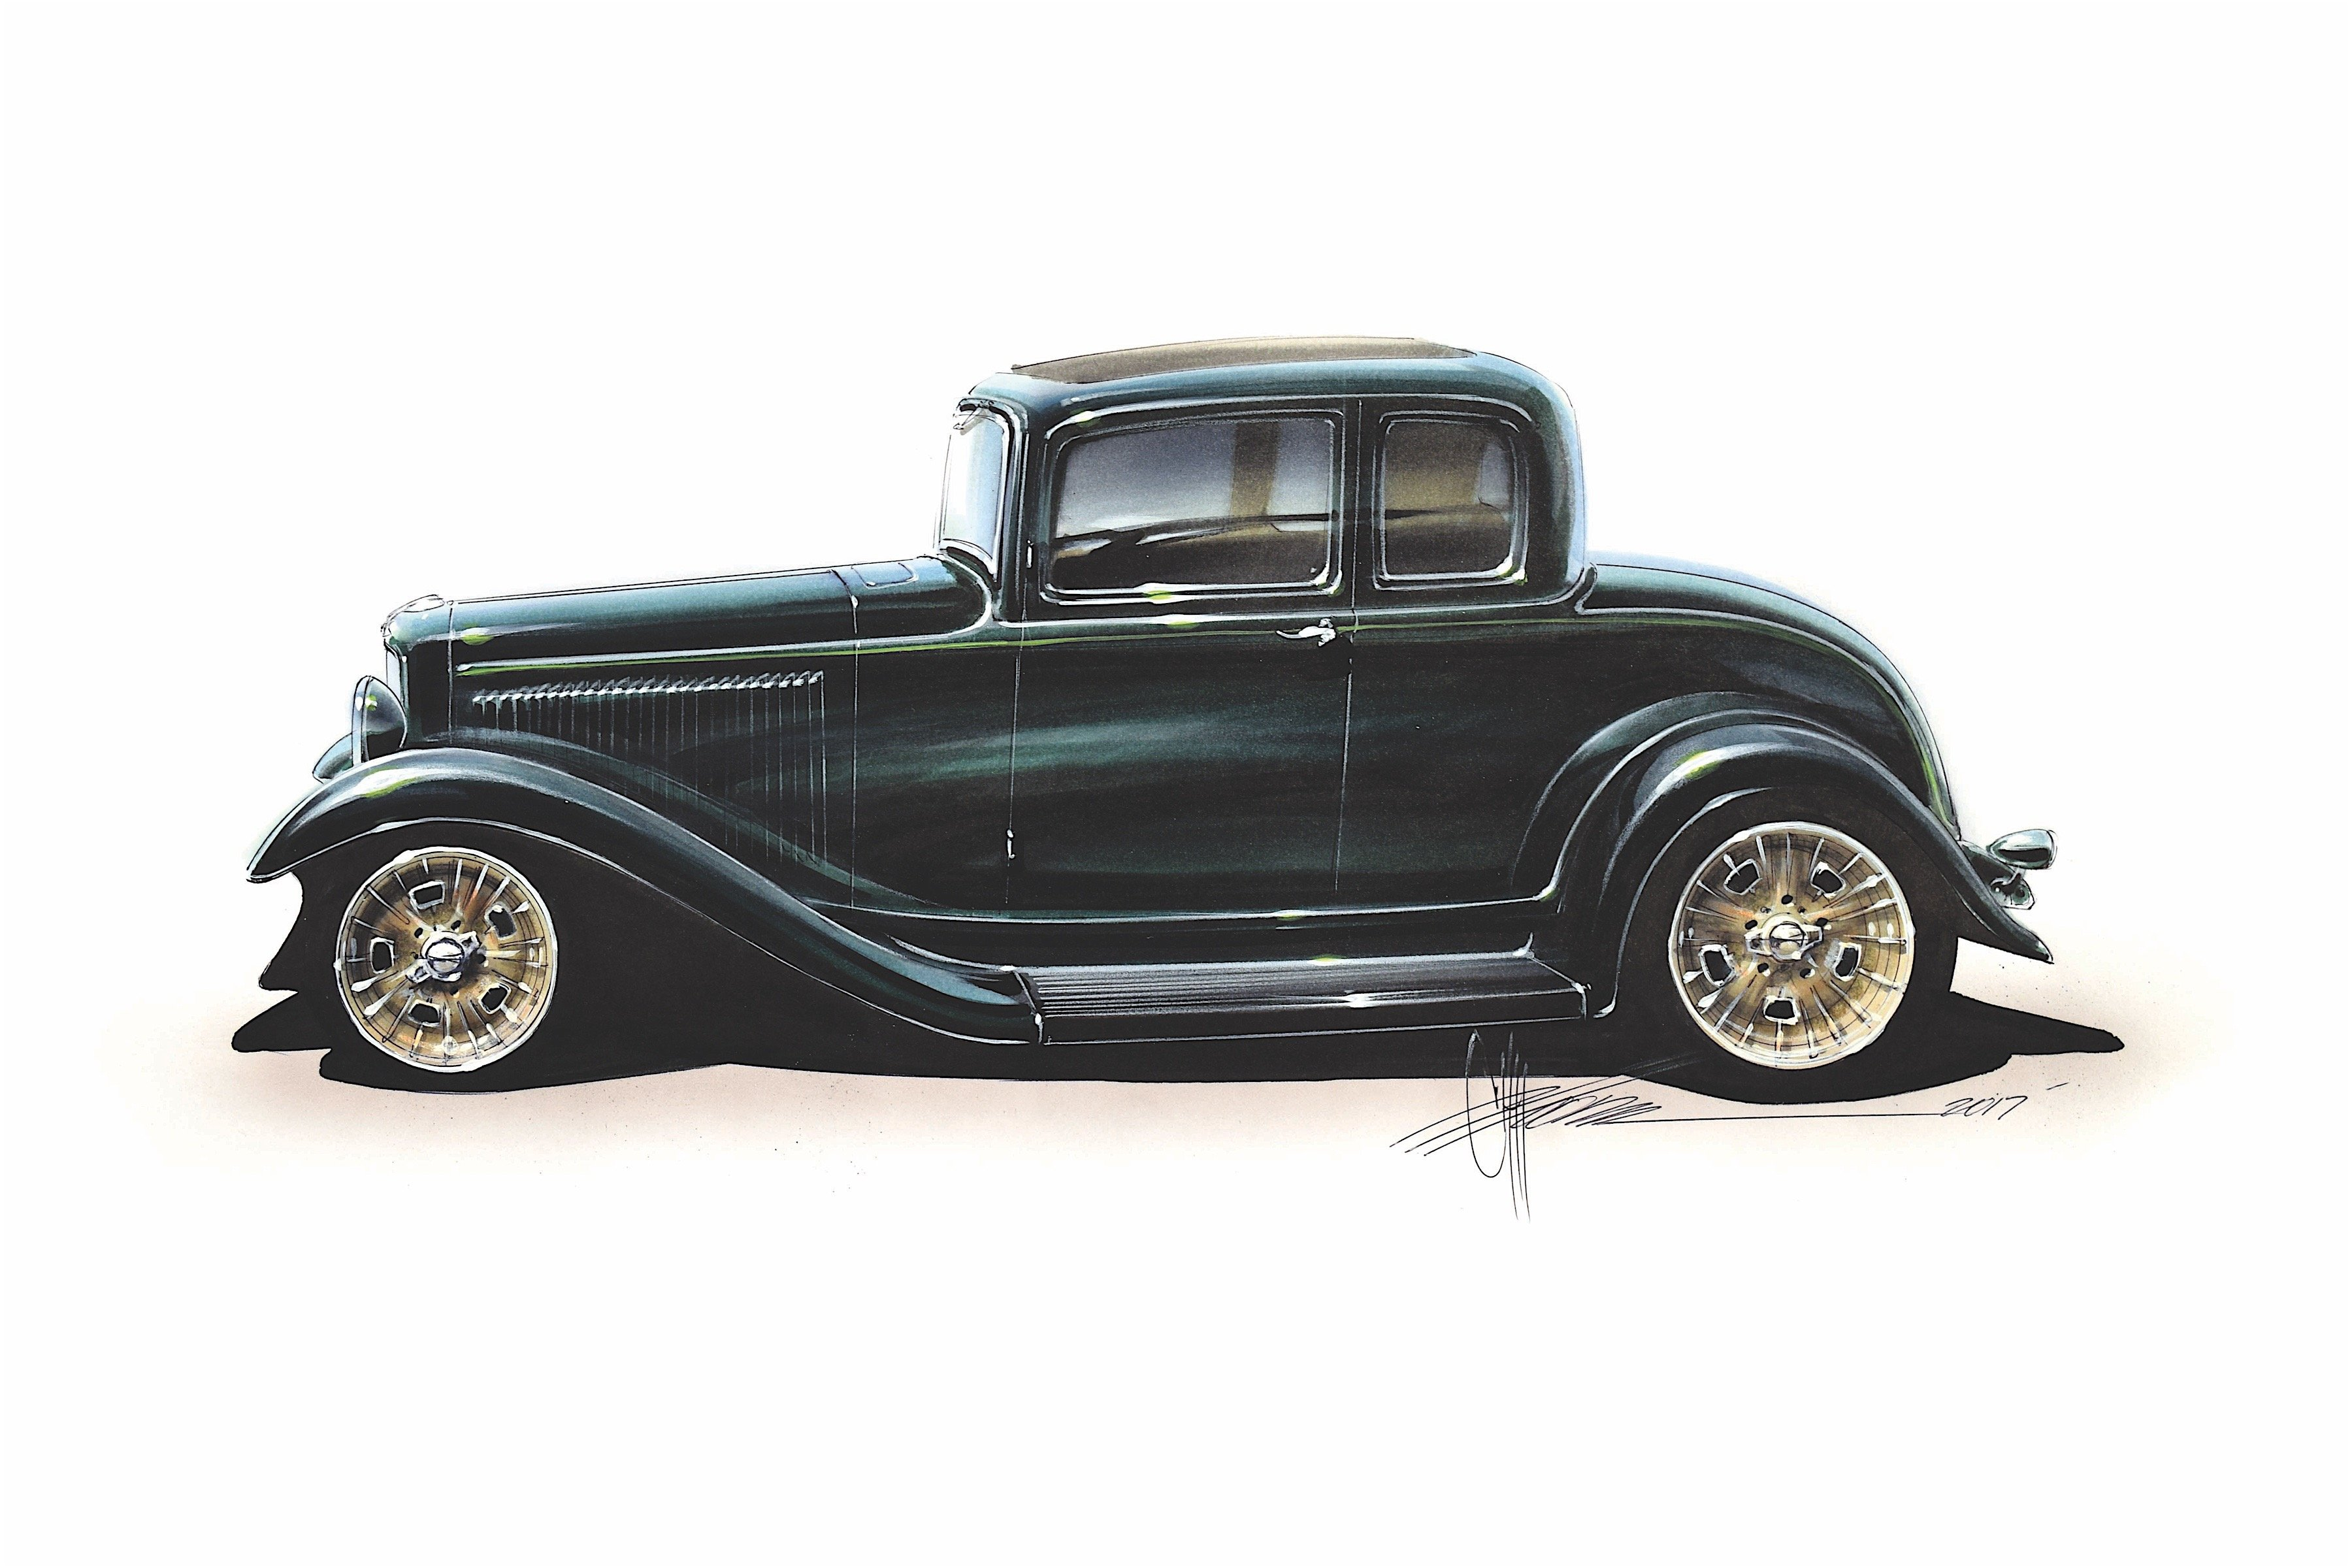 Chip foose the car building legend television personality and hot rodding hero unveiled his latest completed project a period modified five window